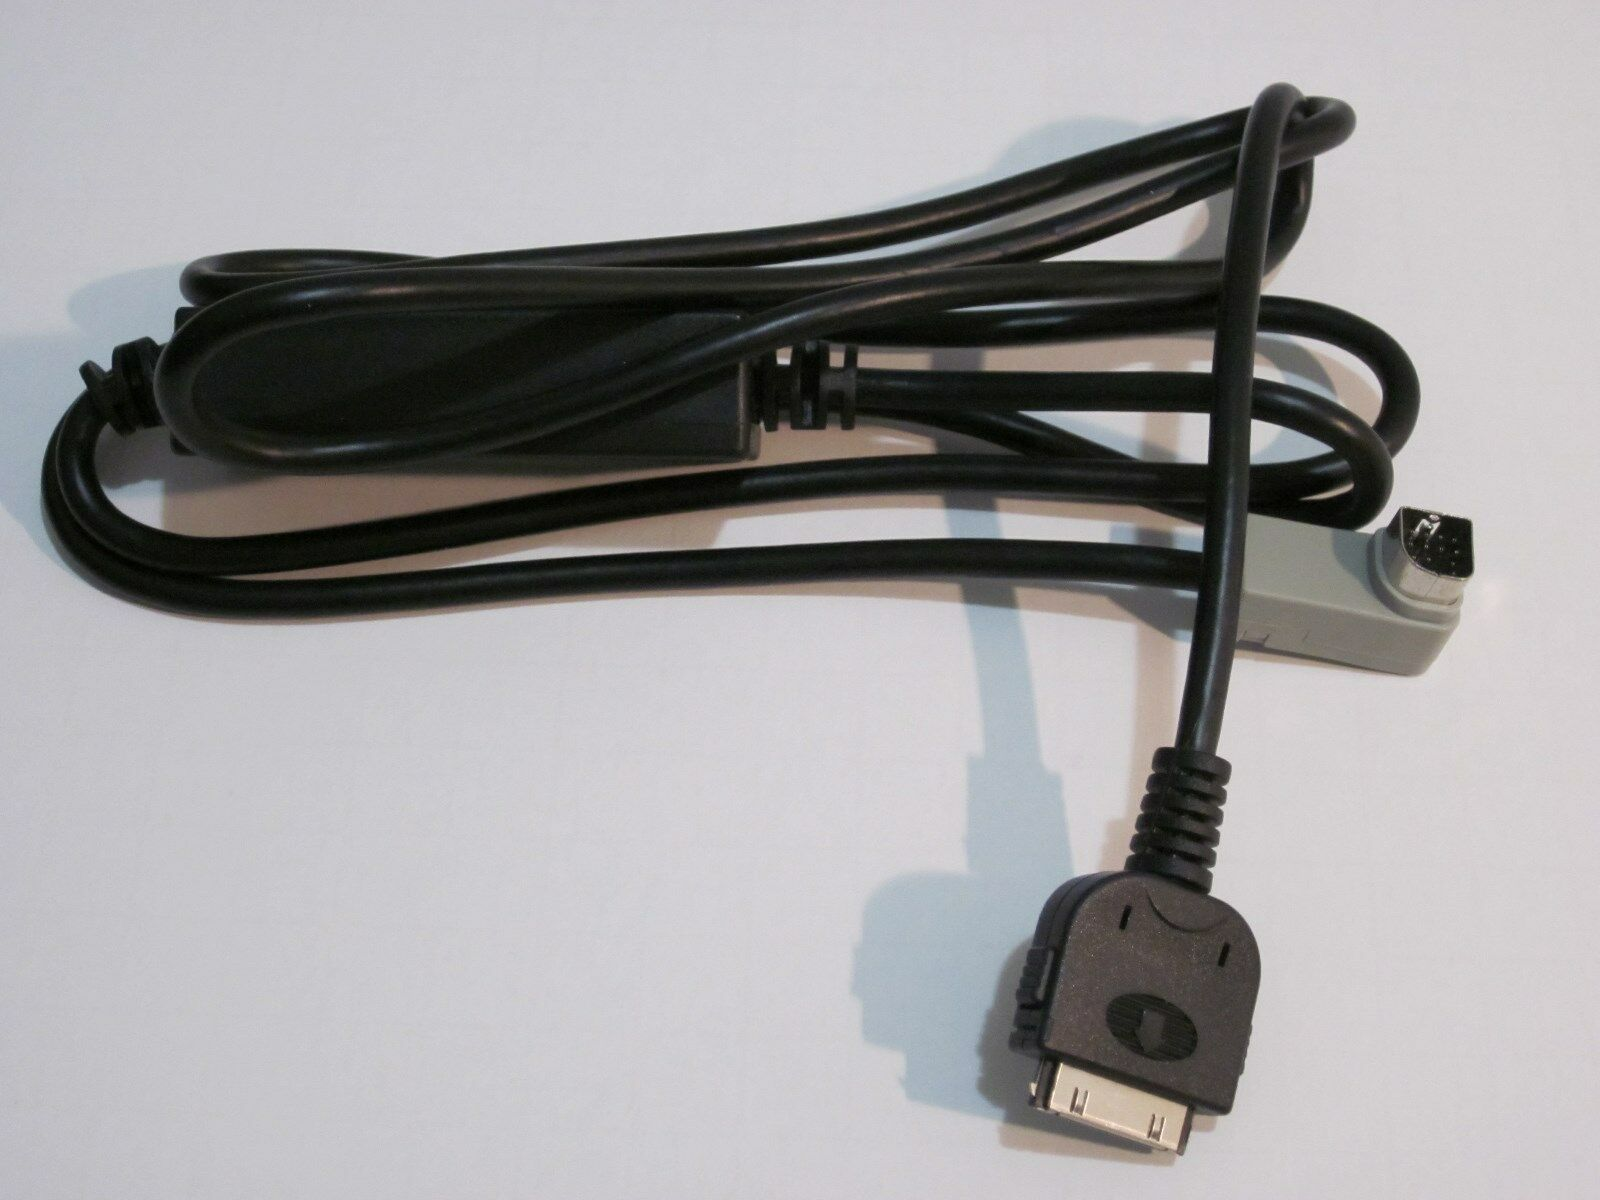 Pioneer Avh P4000dvd Ipod Iphone Adapter Cable 5v New B 1299 Manual 1 Of 3only Available